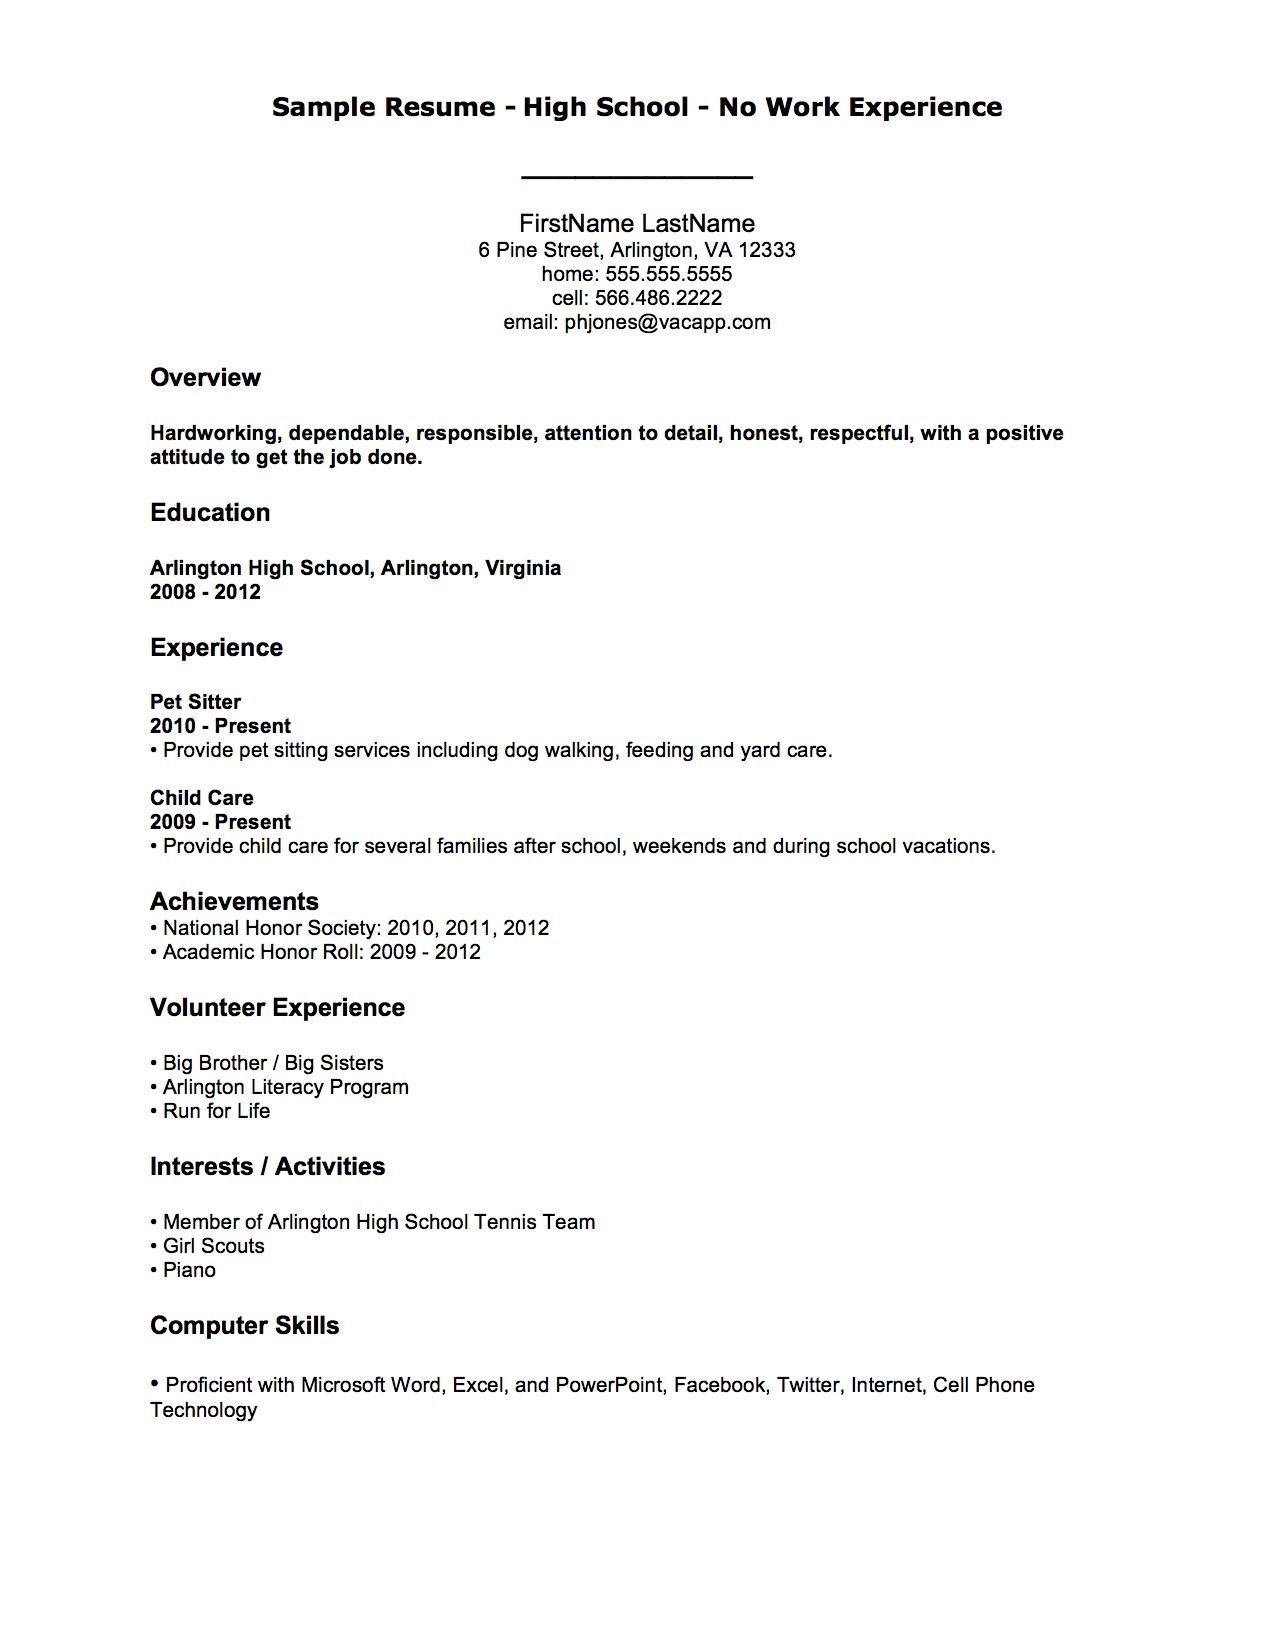 Resume Examples With No Job Experience First job resume